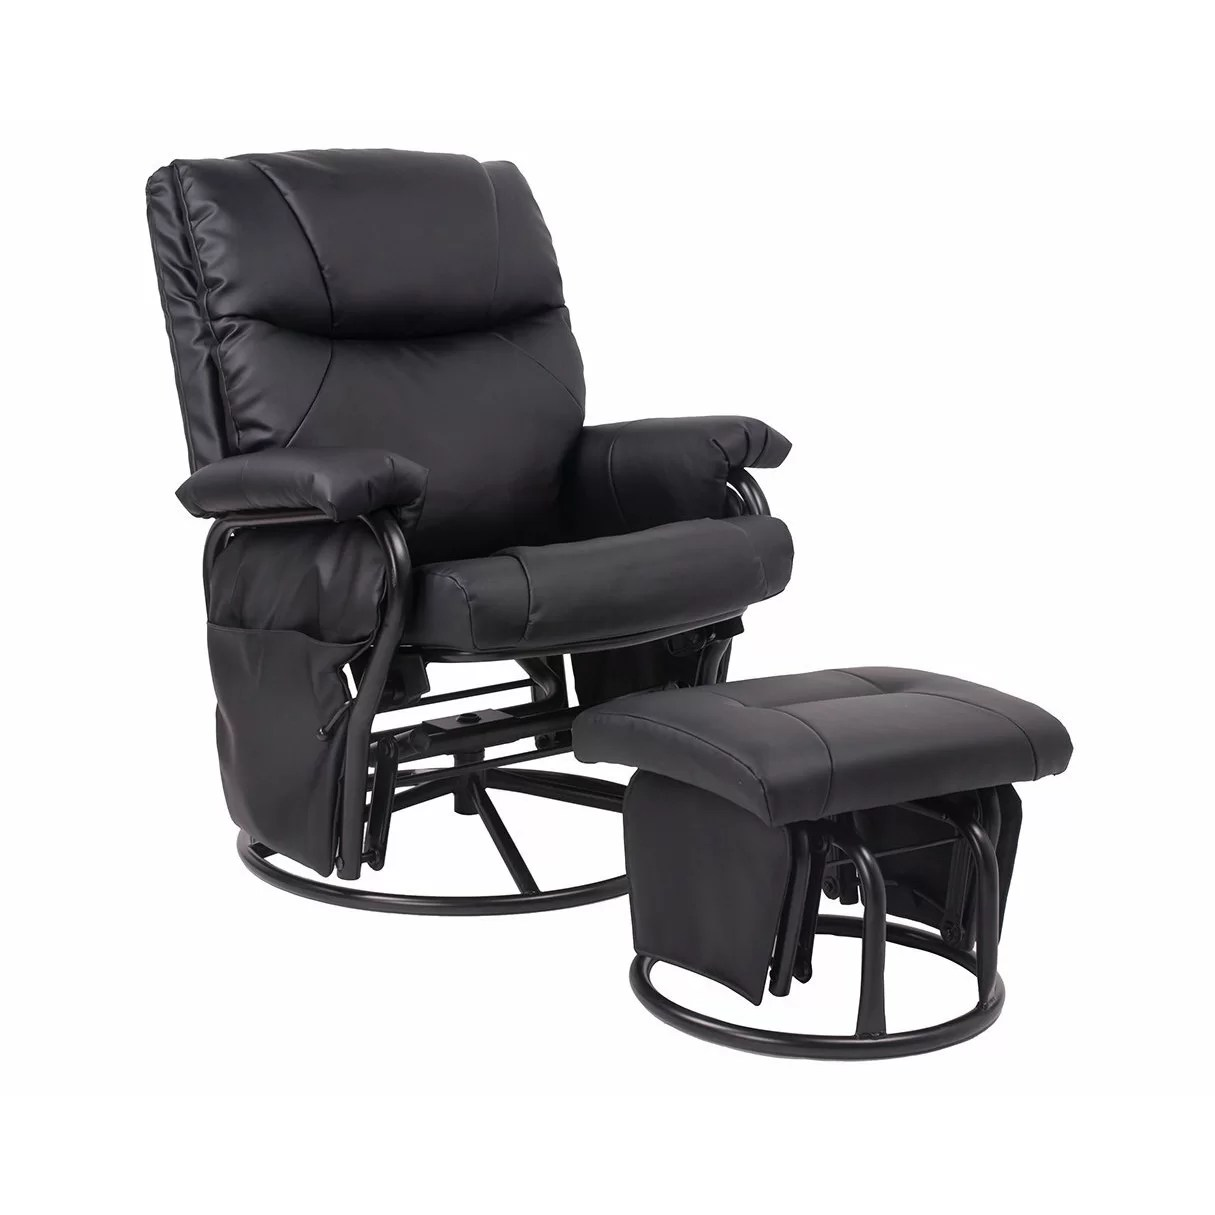 rocking chair and ottoman set wall hugger leather recliner chairs merax ergonomic swivel glider